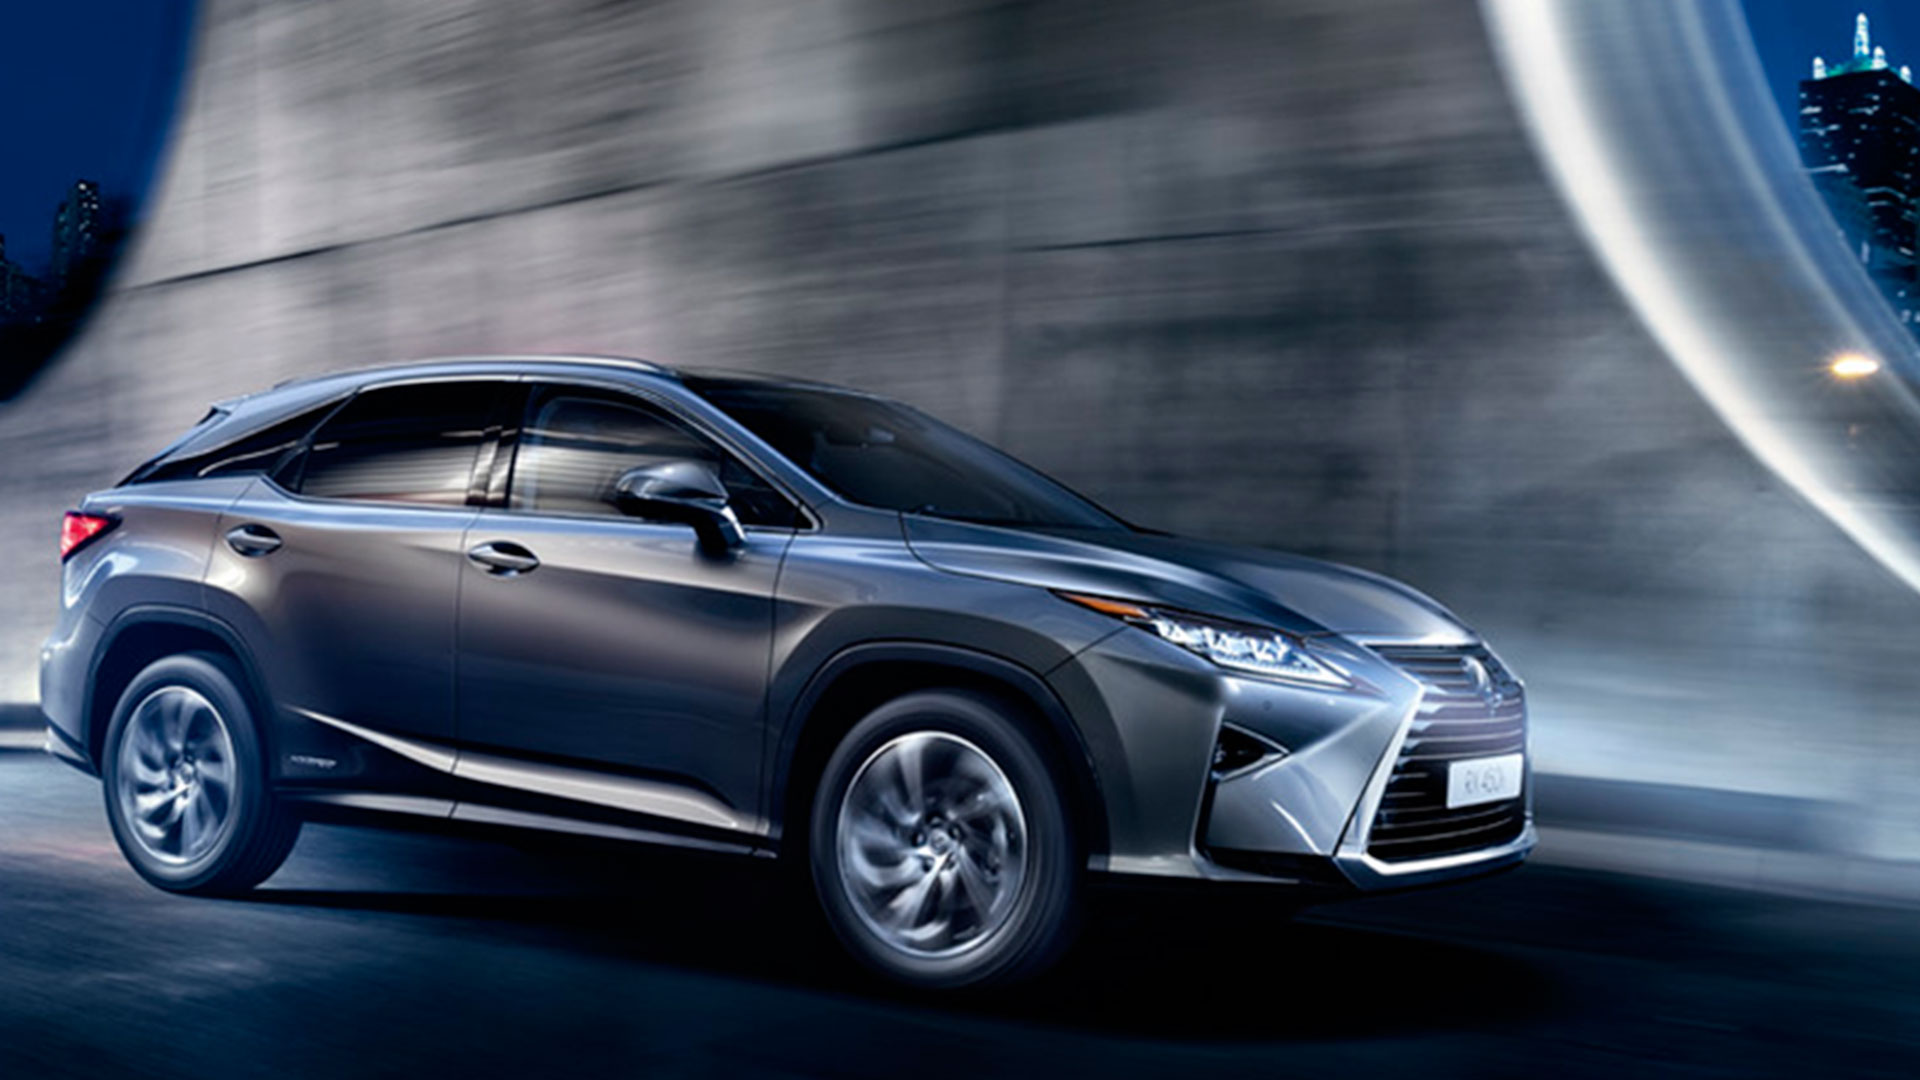 Acabado Business Lexus RX 450h hero asset